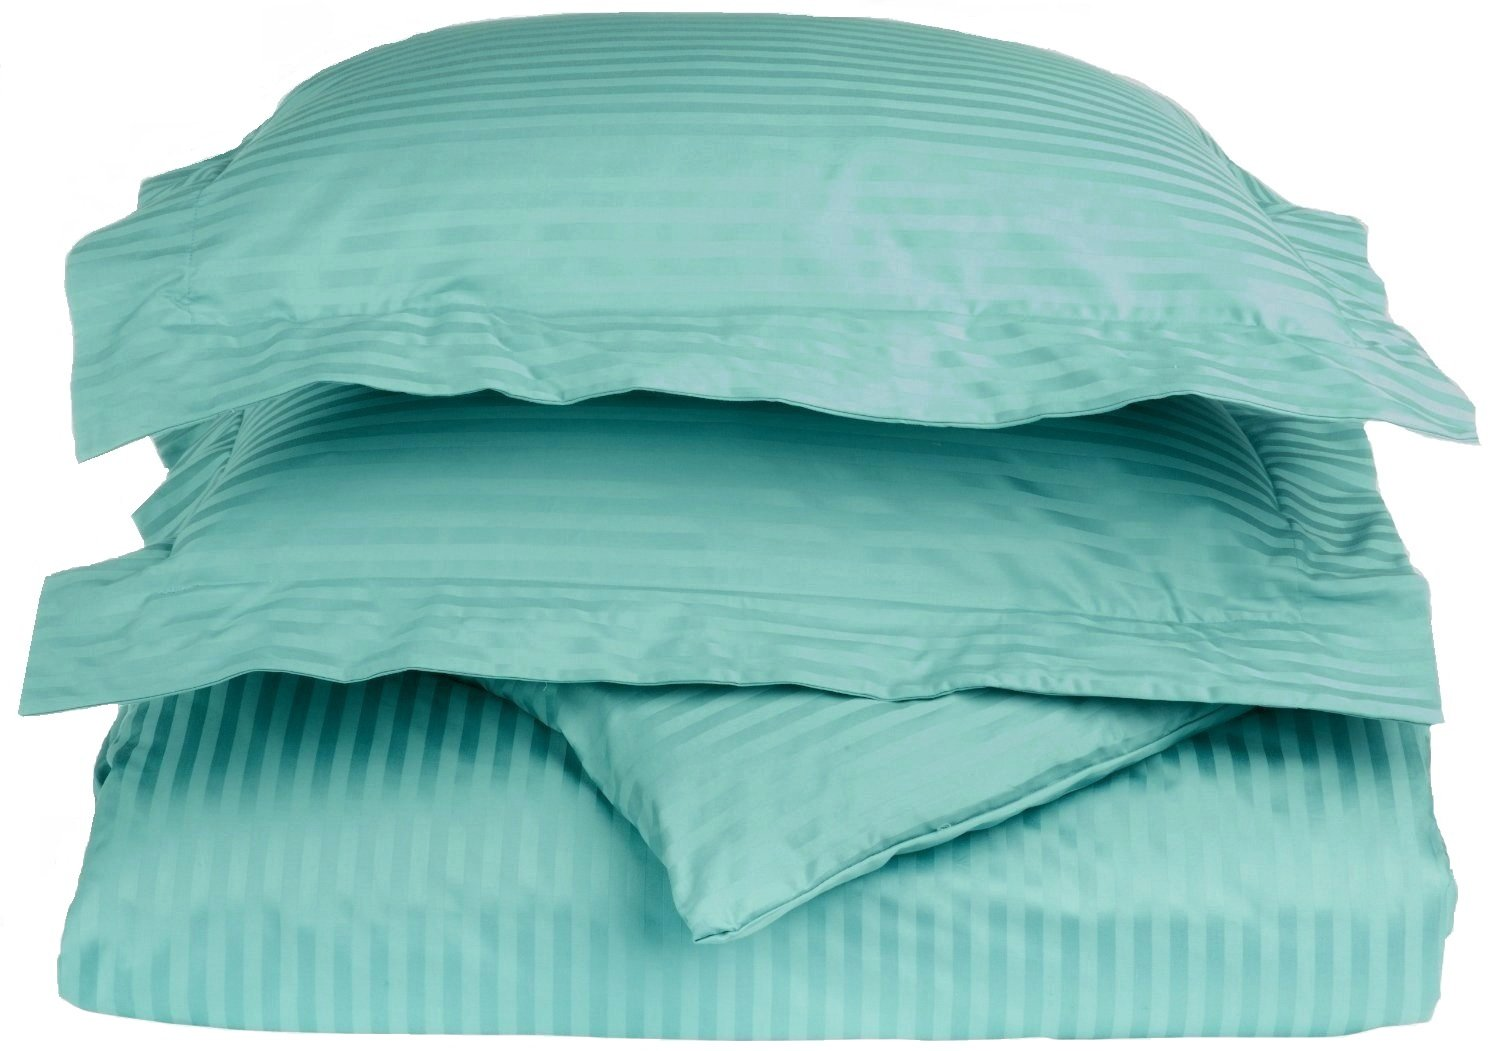 100% Egyptian Cotton 650 Thread Count King/California King 3-Piece Duvet Cover Set, Single Ply, Stripe, Teal